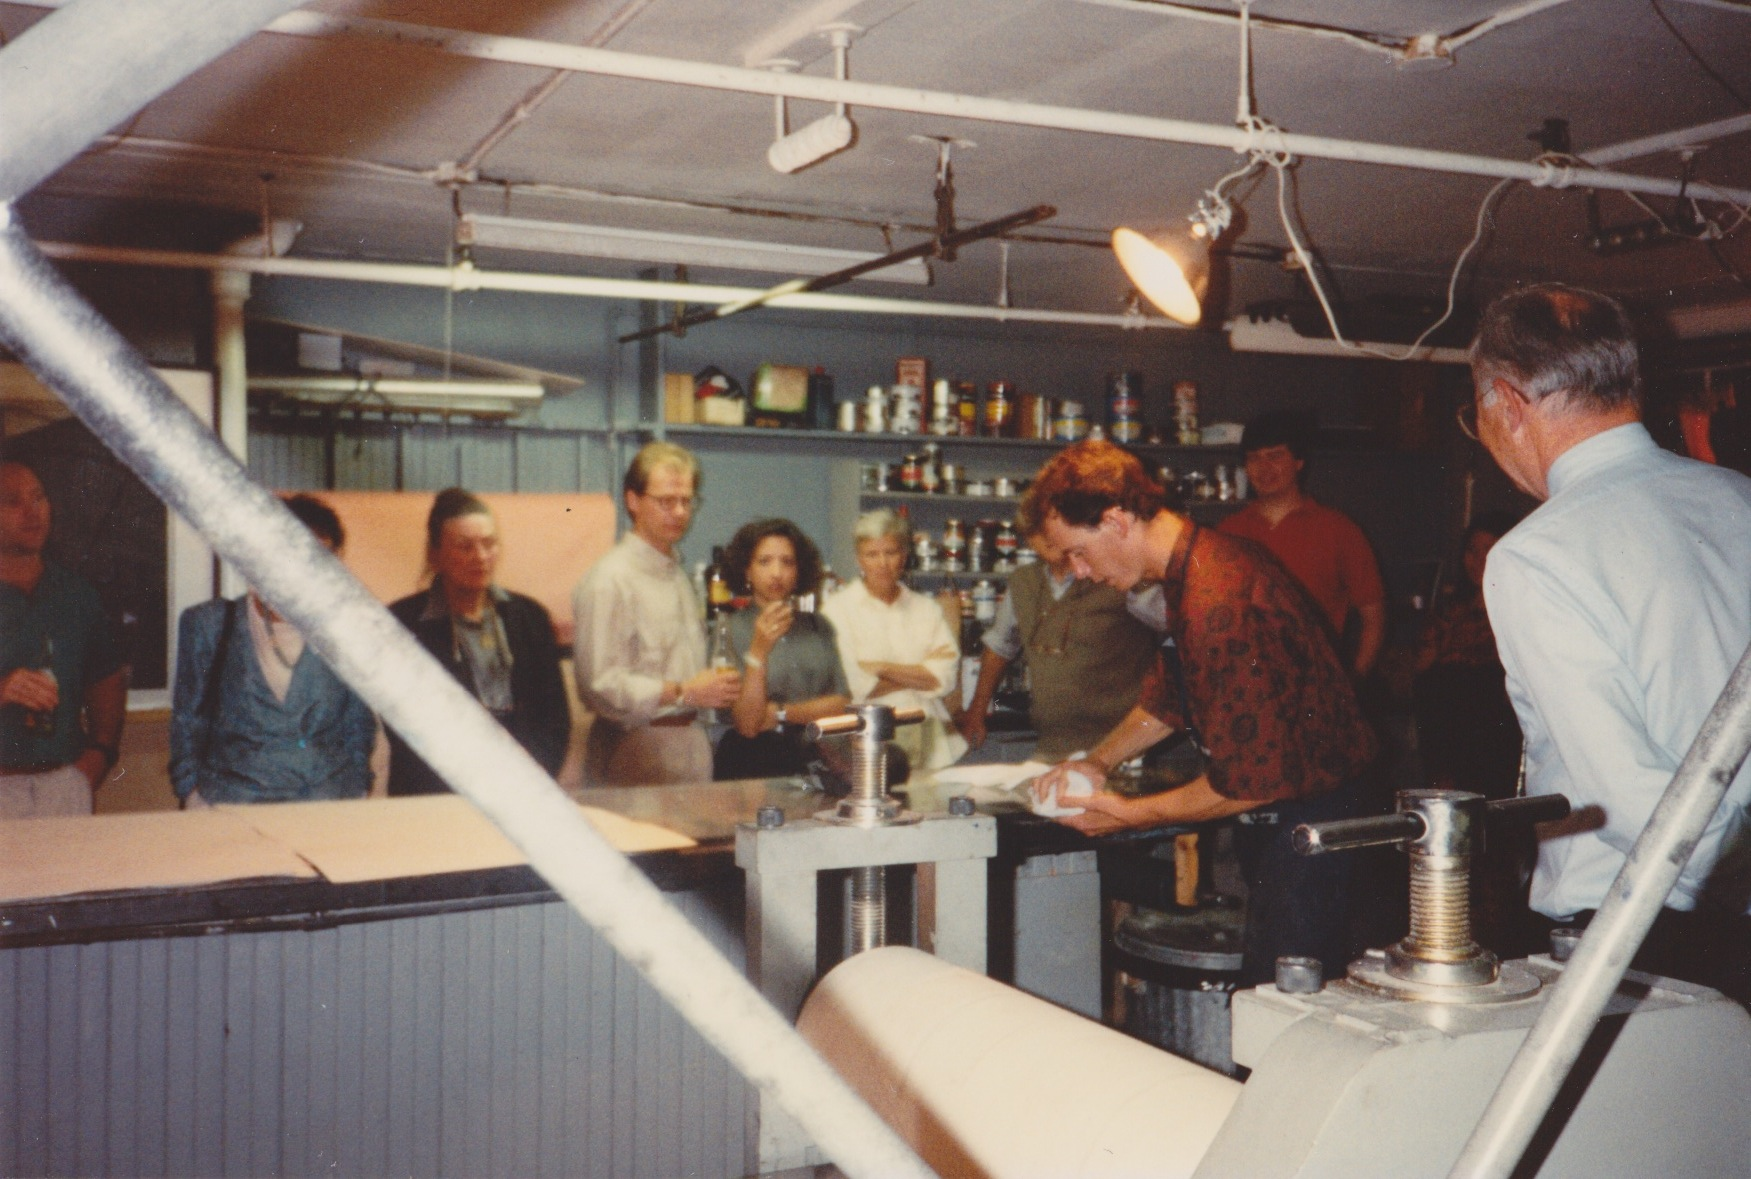 James Stroud gives a print demonstration at Boston's Distillery Building in the early 1990s.